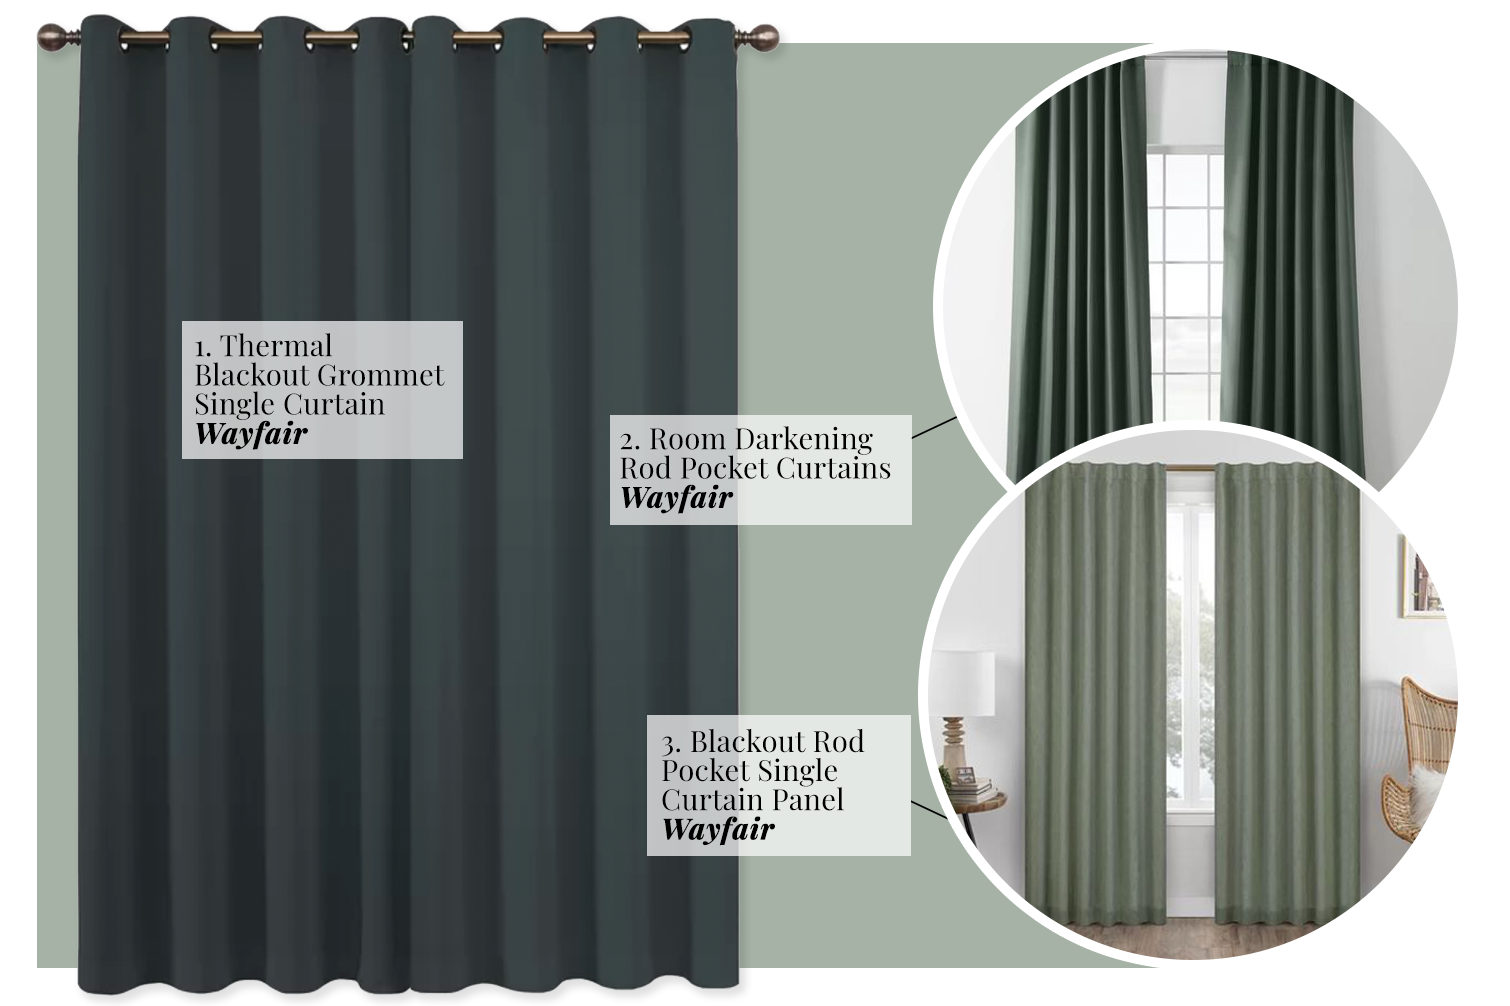 What Color Curtains Go With Sage Green Walls? Dark Hunter Green, Forest Green, Emerald and Teal.